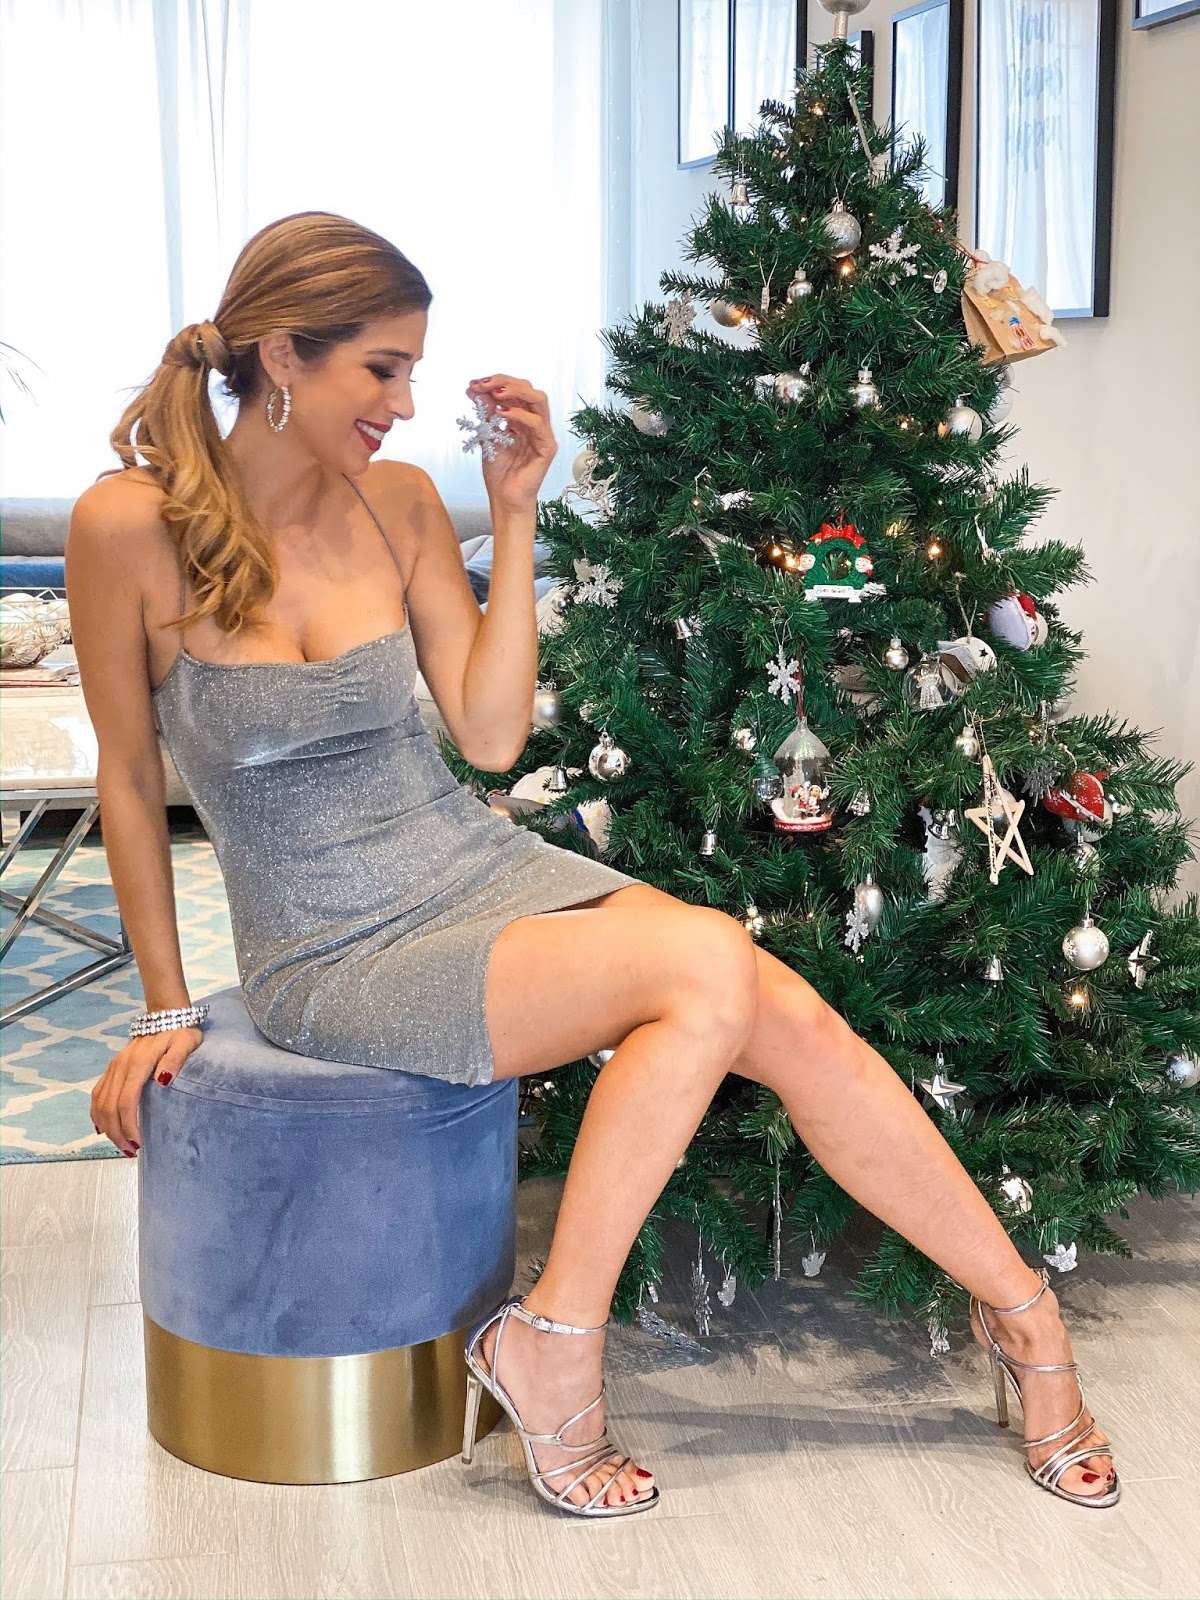 Party dress: ecco 4 idee per i tuoi look per le feste